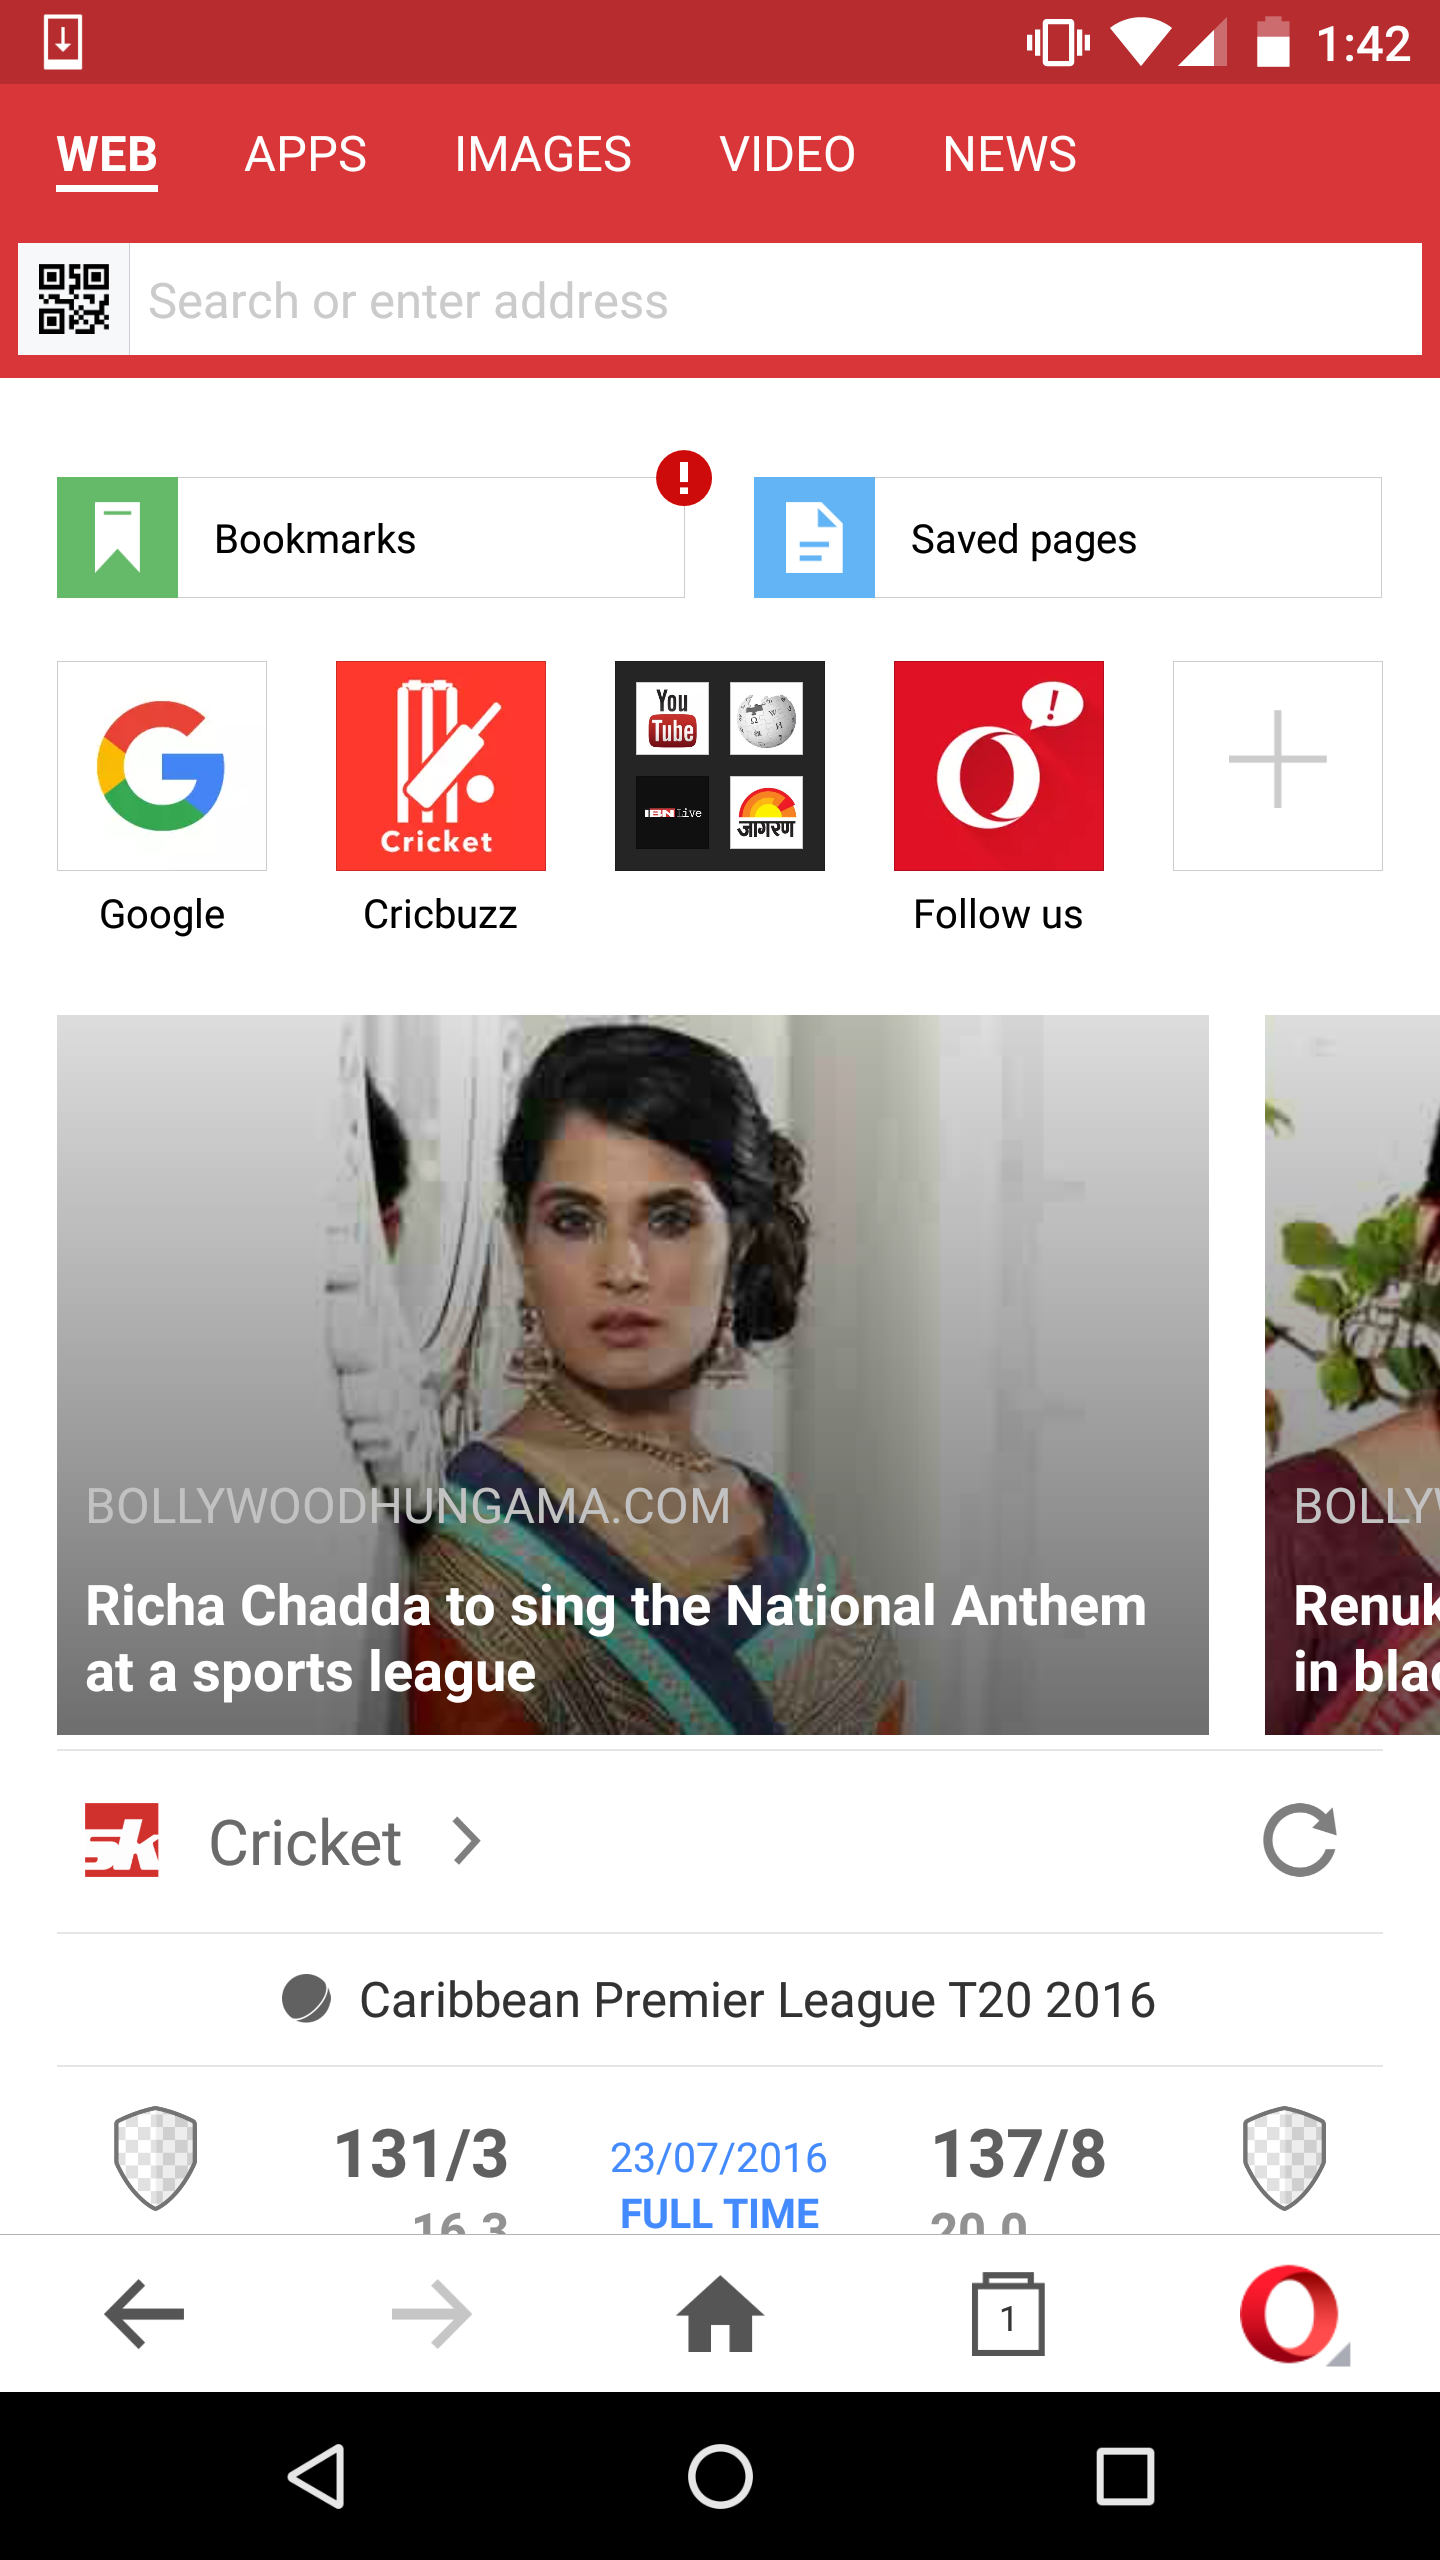 Bollywood news and free video download on Opera Mini